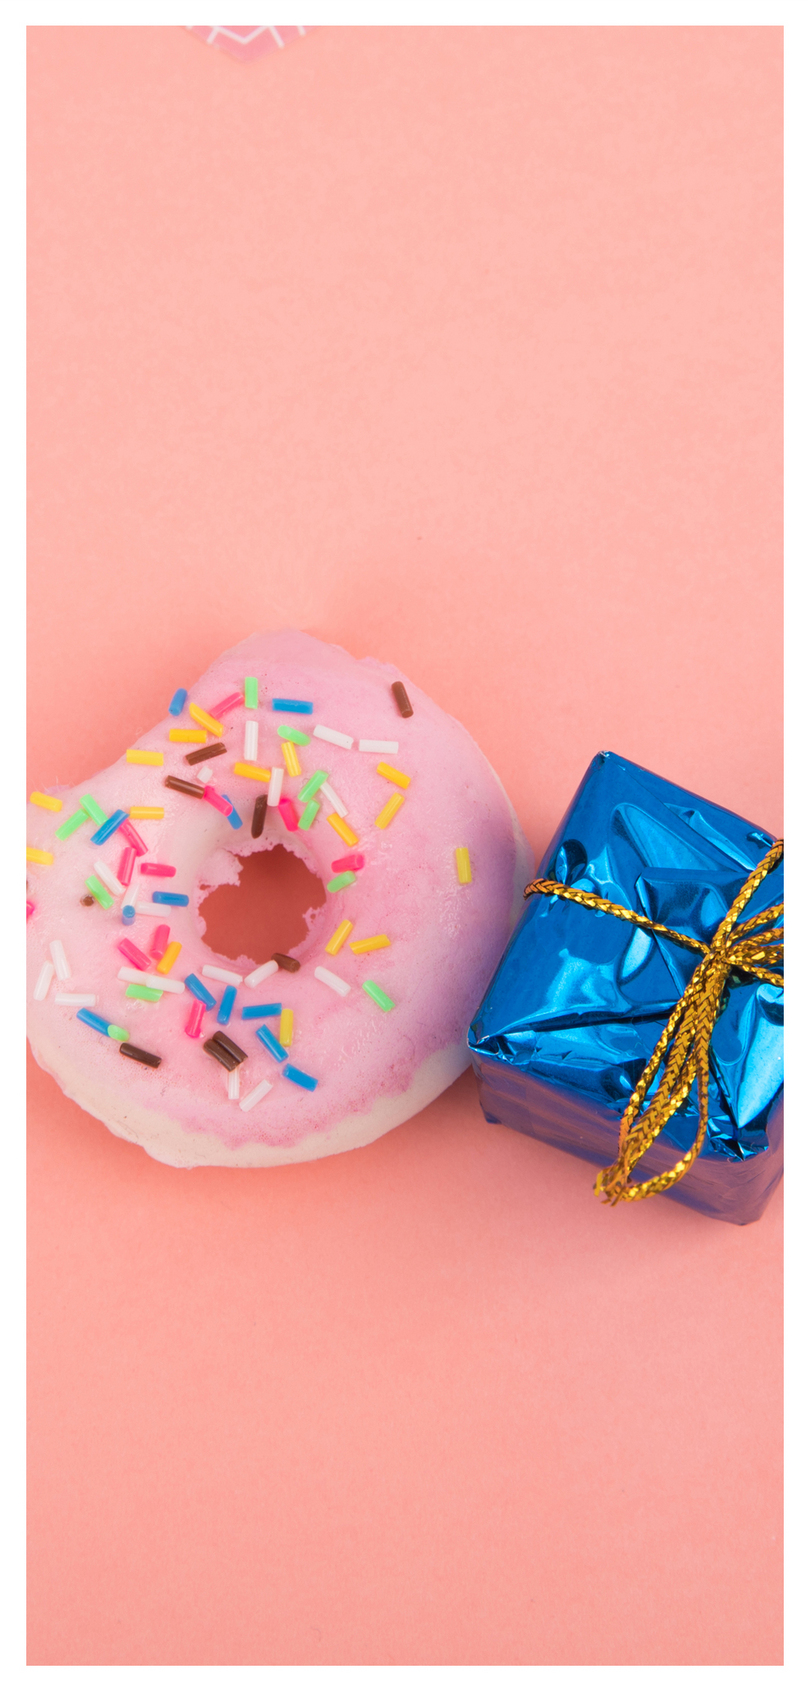 Donut Cell Phone Wallpaper Backgrounds Images Free